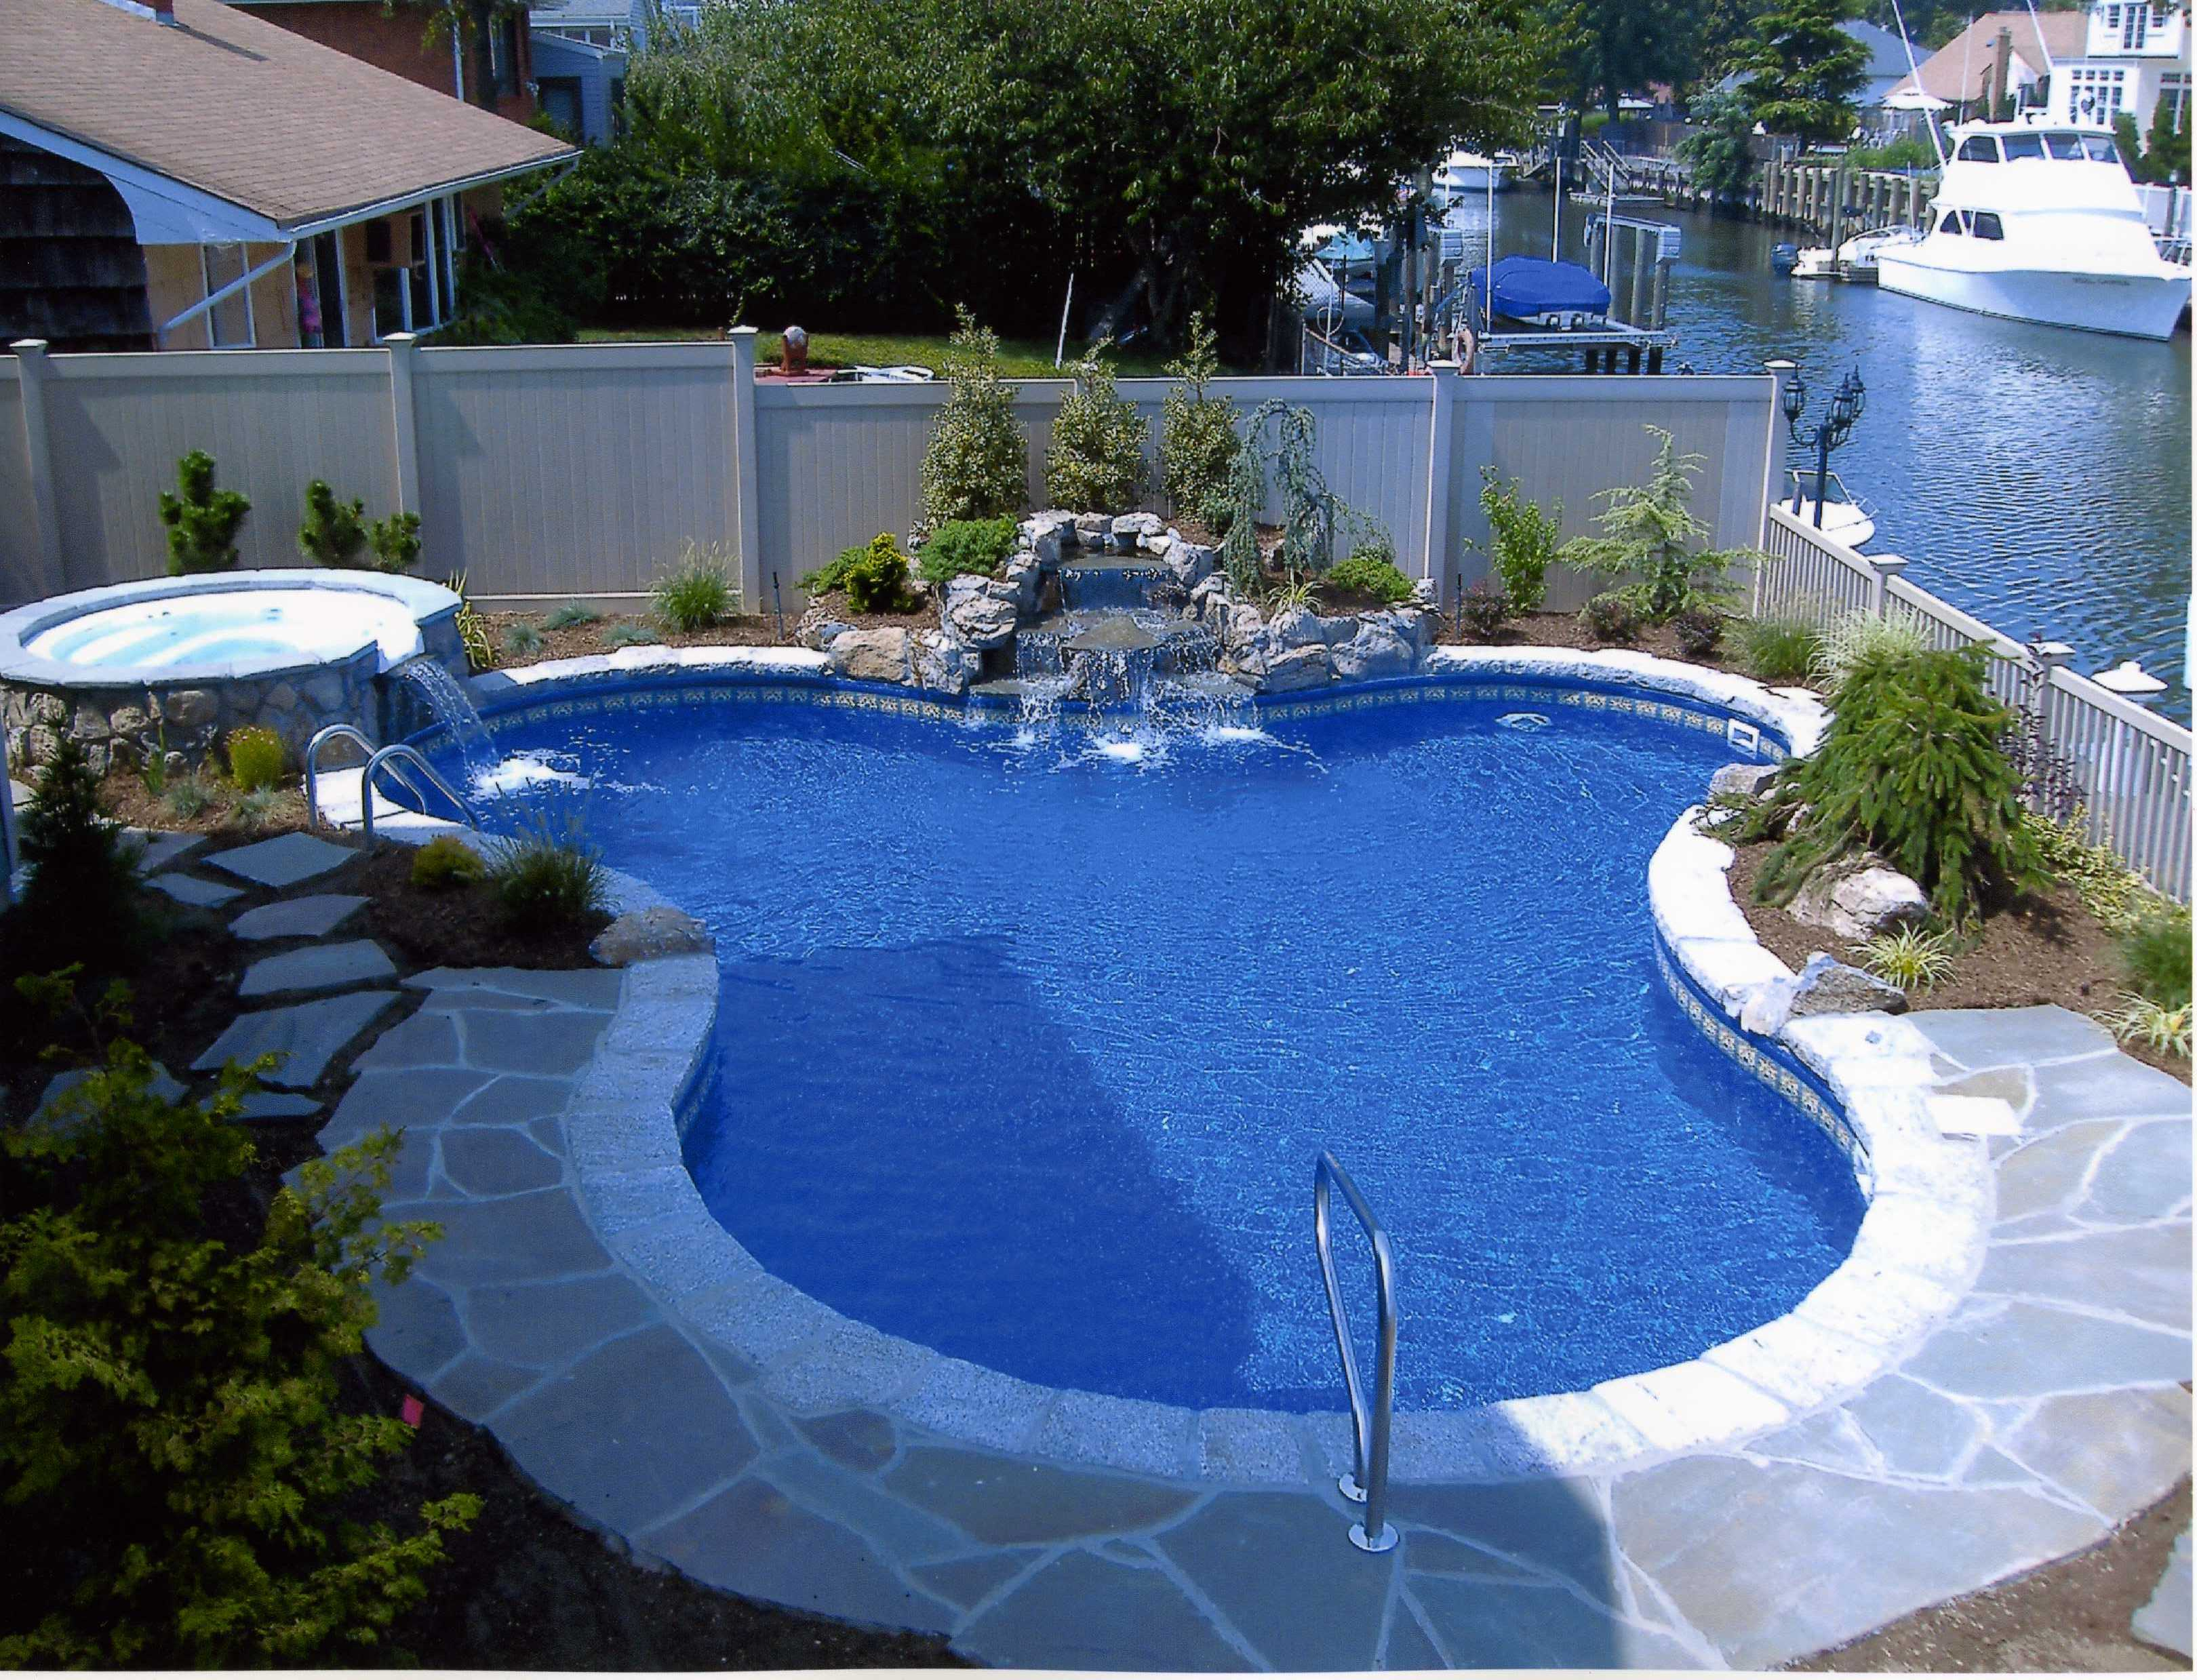 Backyard landscaping ideas swimming pool design for Large swimming pool designs